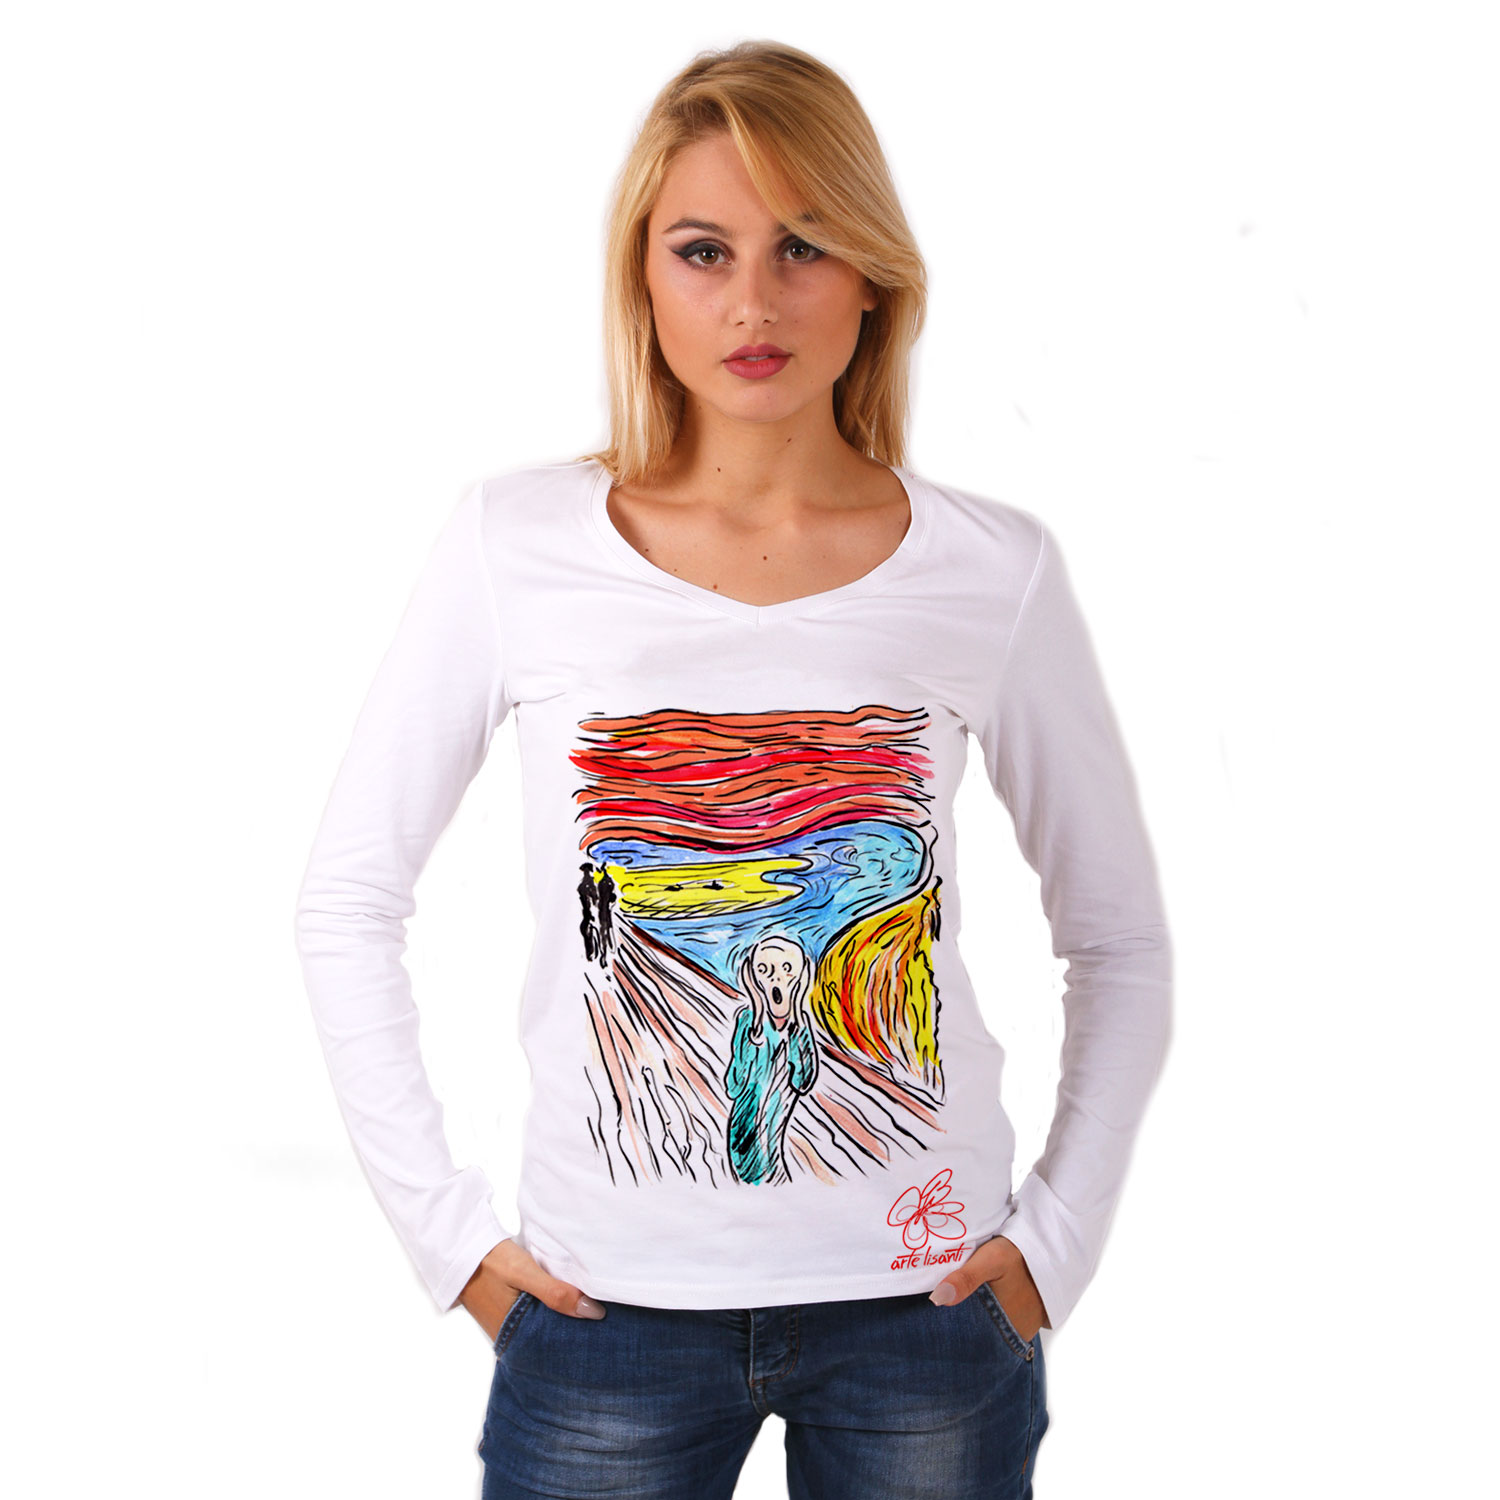 Maglia con scollo a V dipinta a mano - L'urlo di Munch cartoon color